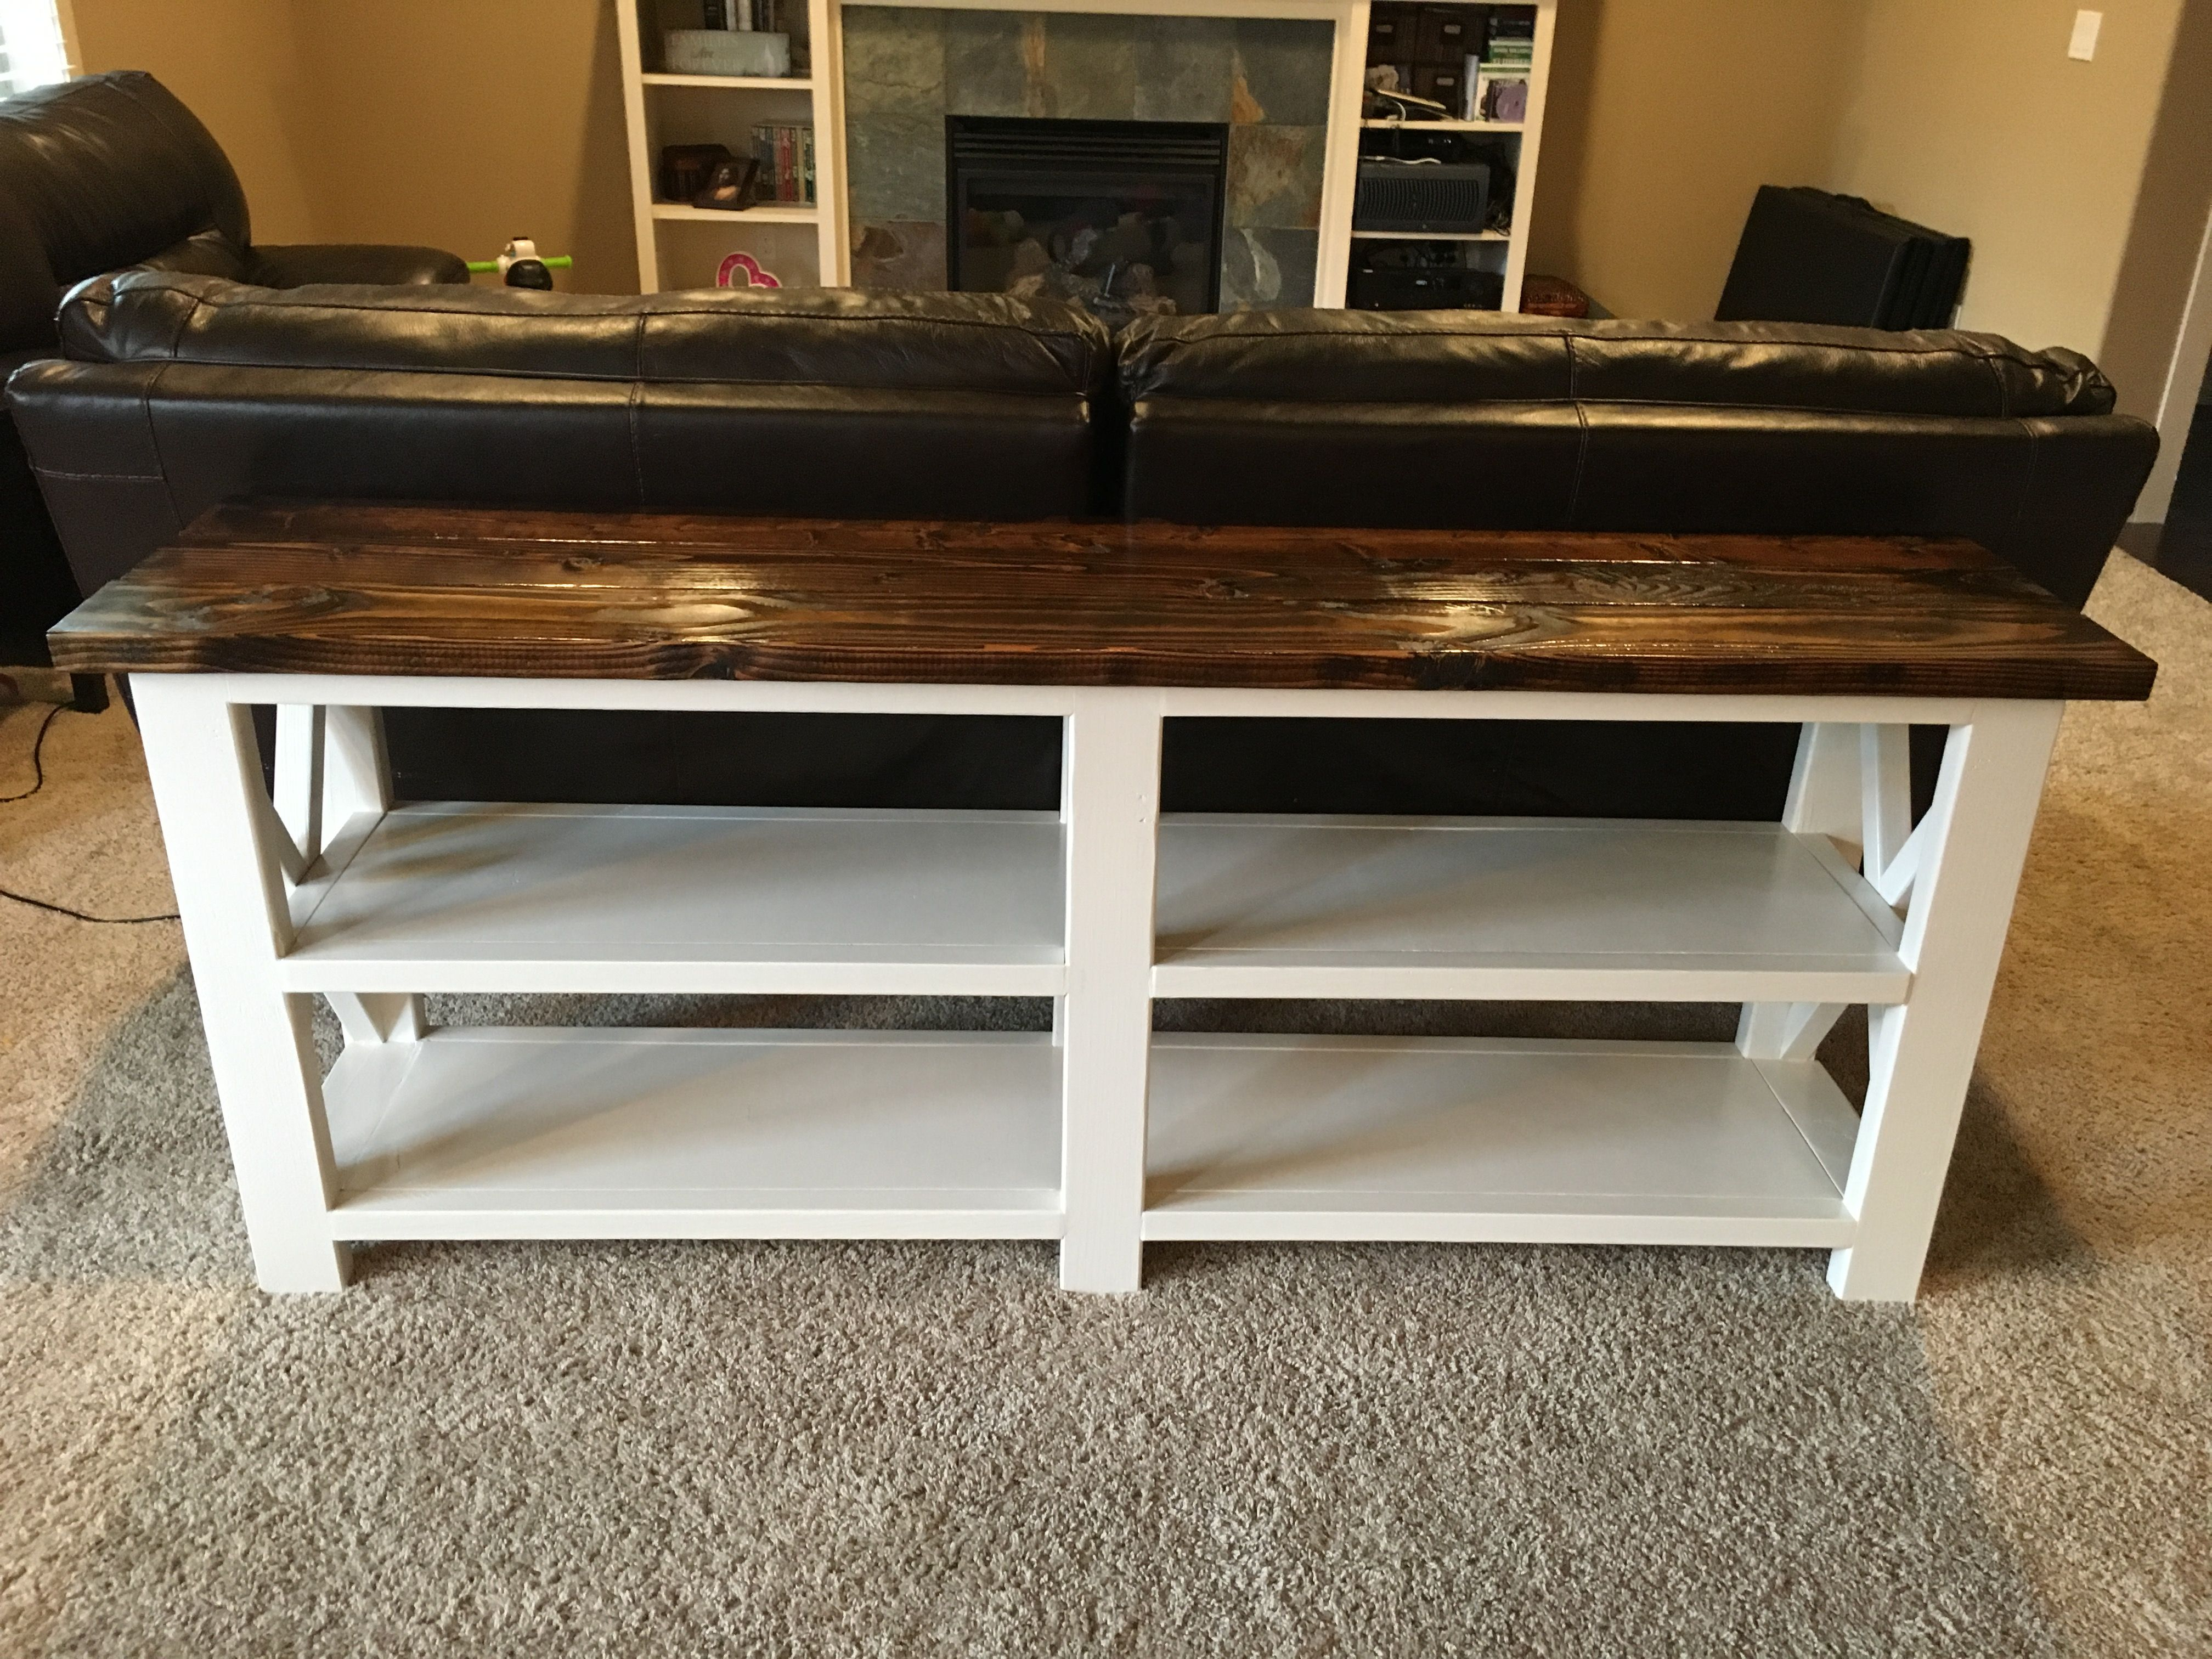 Ana white x console sofa table diy projects entry table ana white x console sofa table diy projects geotapseo Choice Image